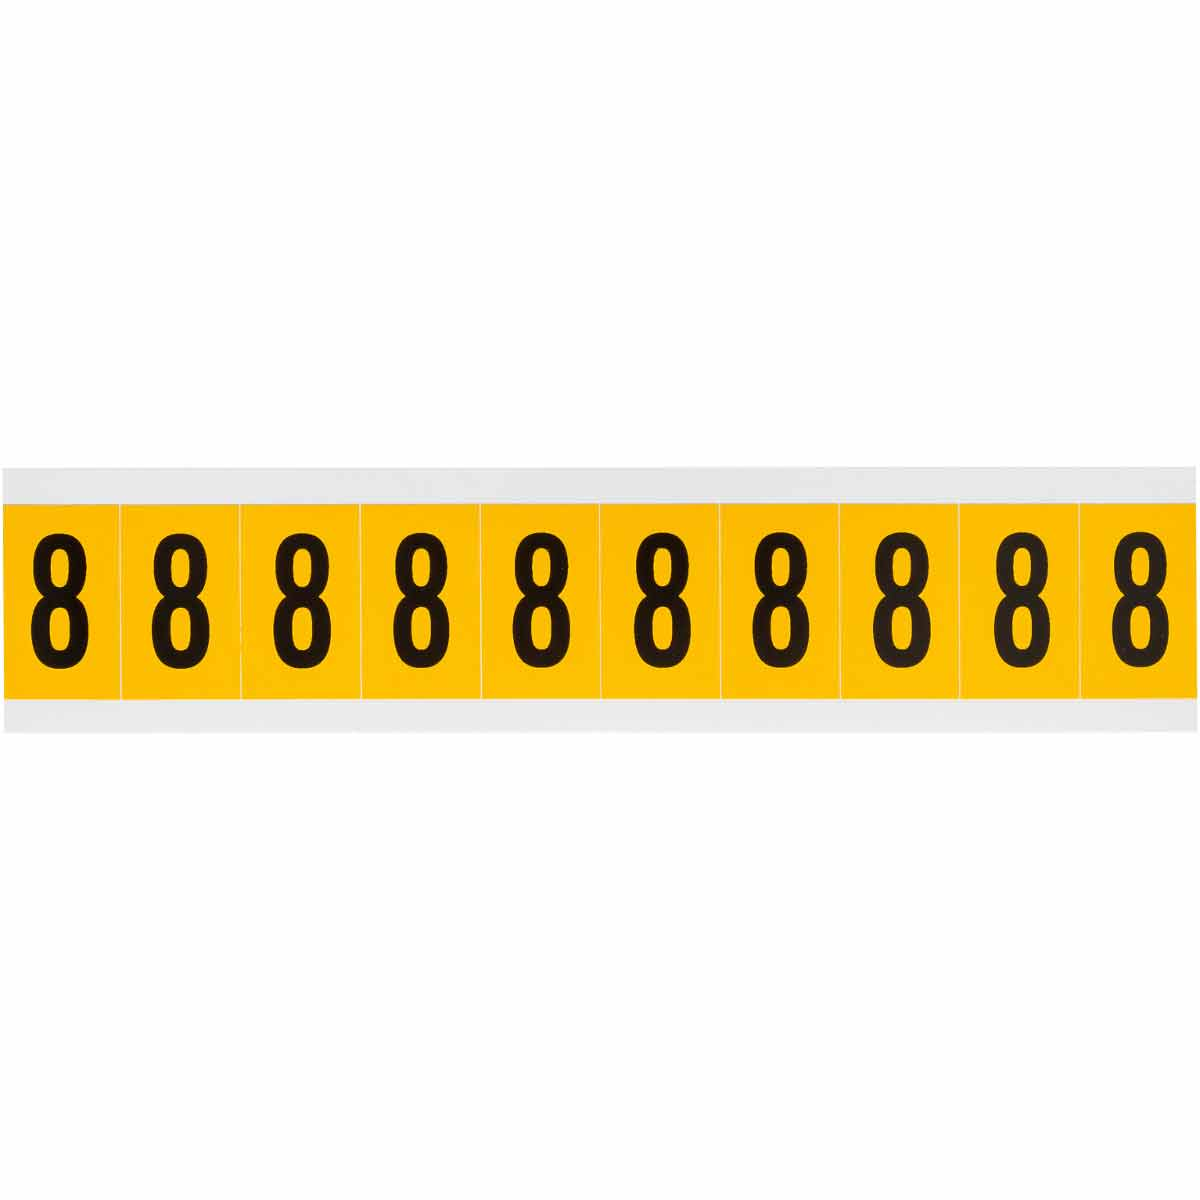 BRADY 1530-8 15 Series Number &Letter Card